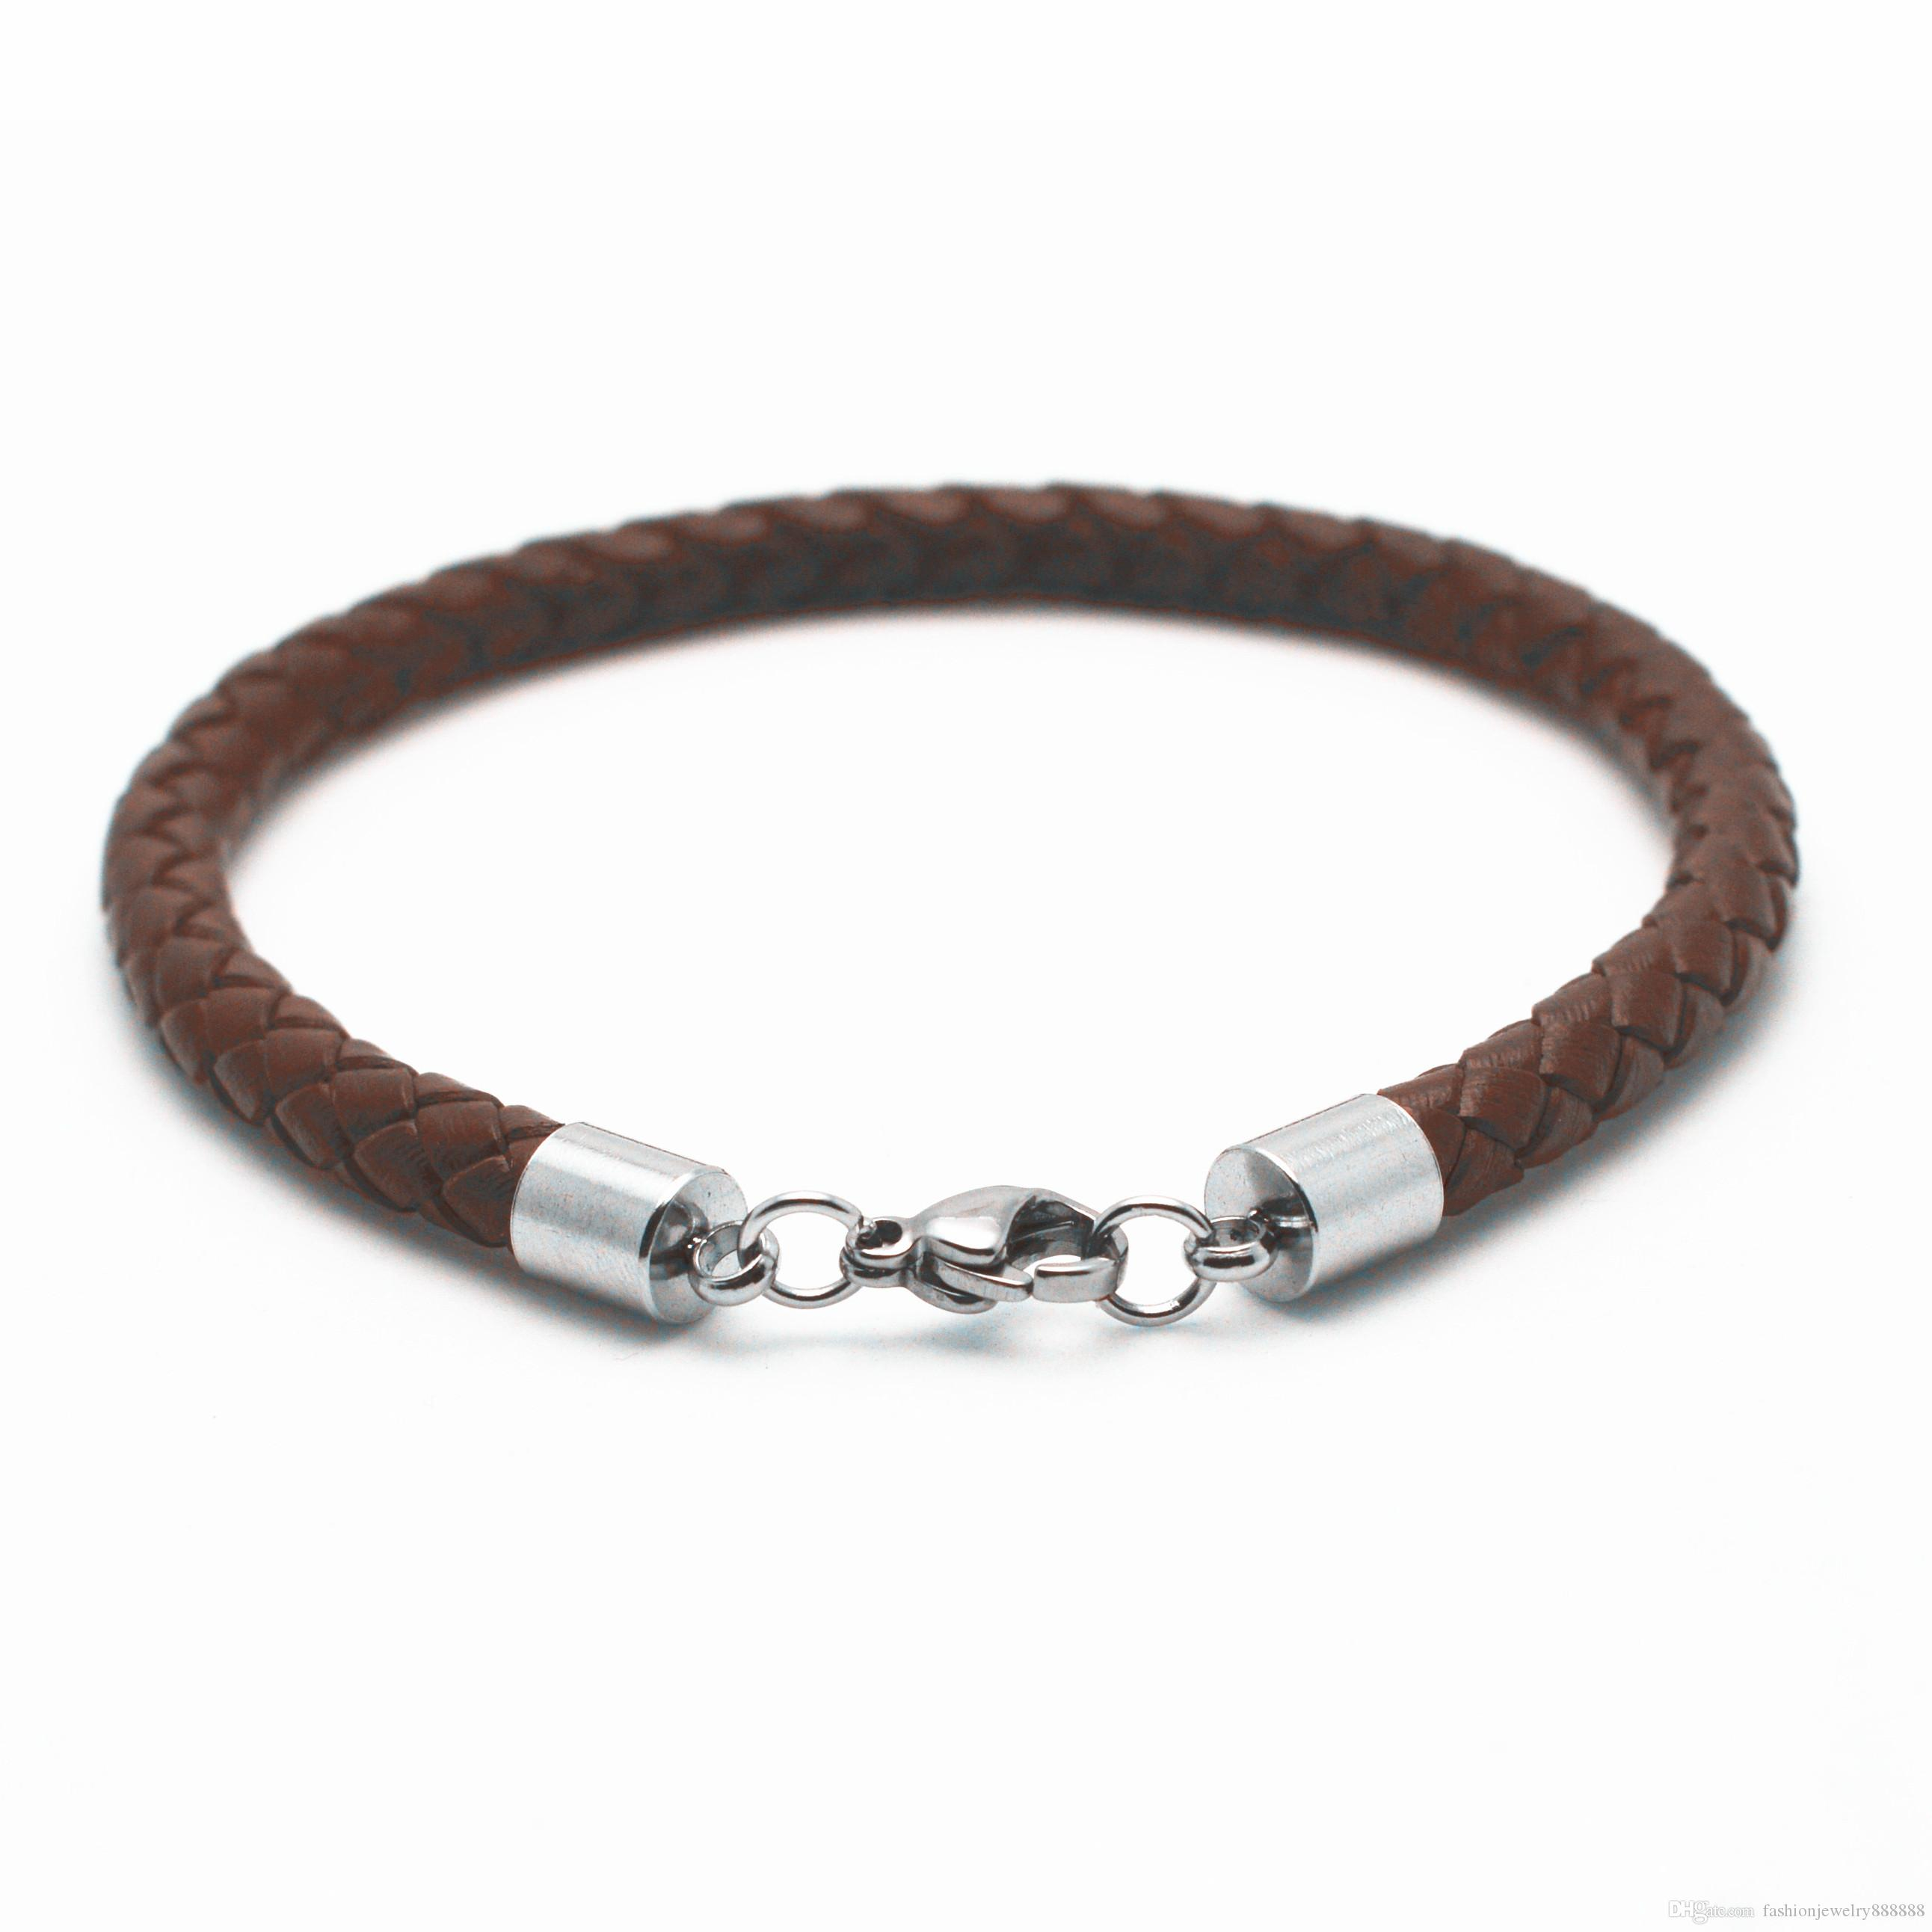 clasp vincero luxury dress silver rose bracelet italian watches bangle gold s men brown mens products mocha strap double the bangles croc leather braided